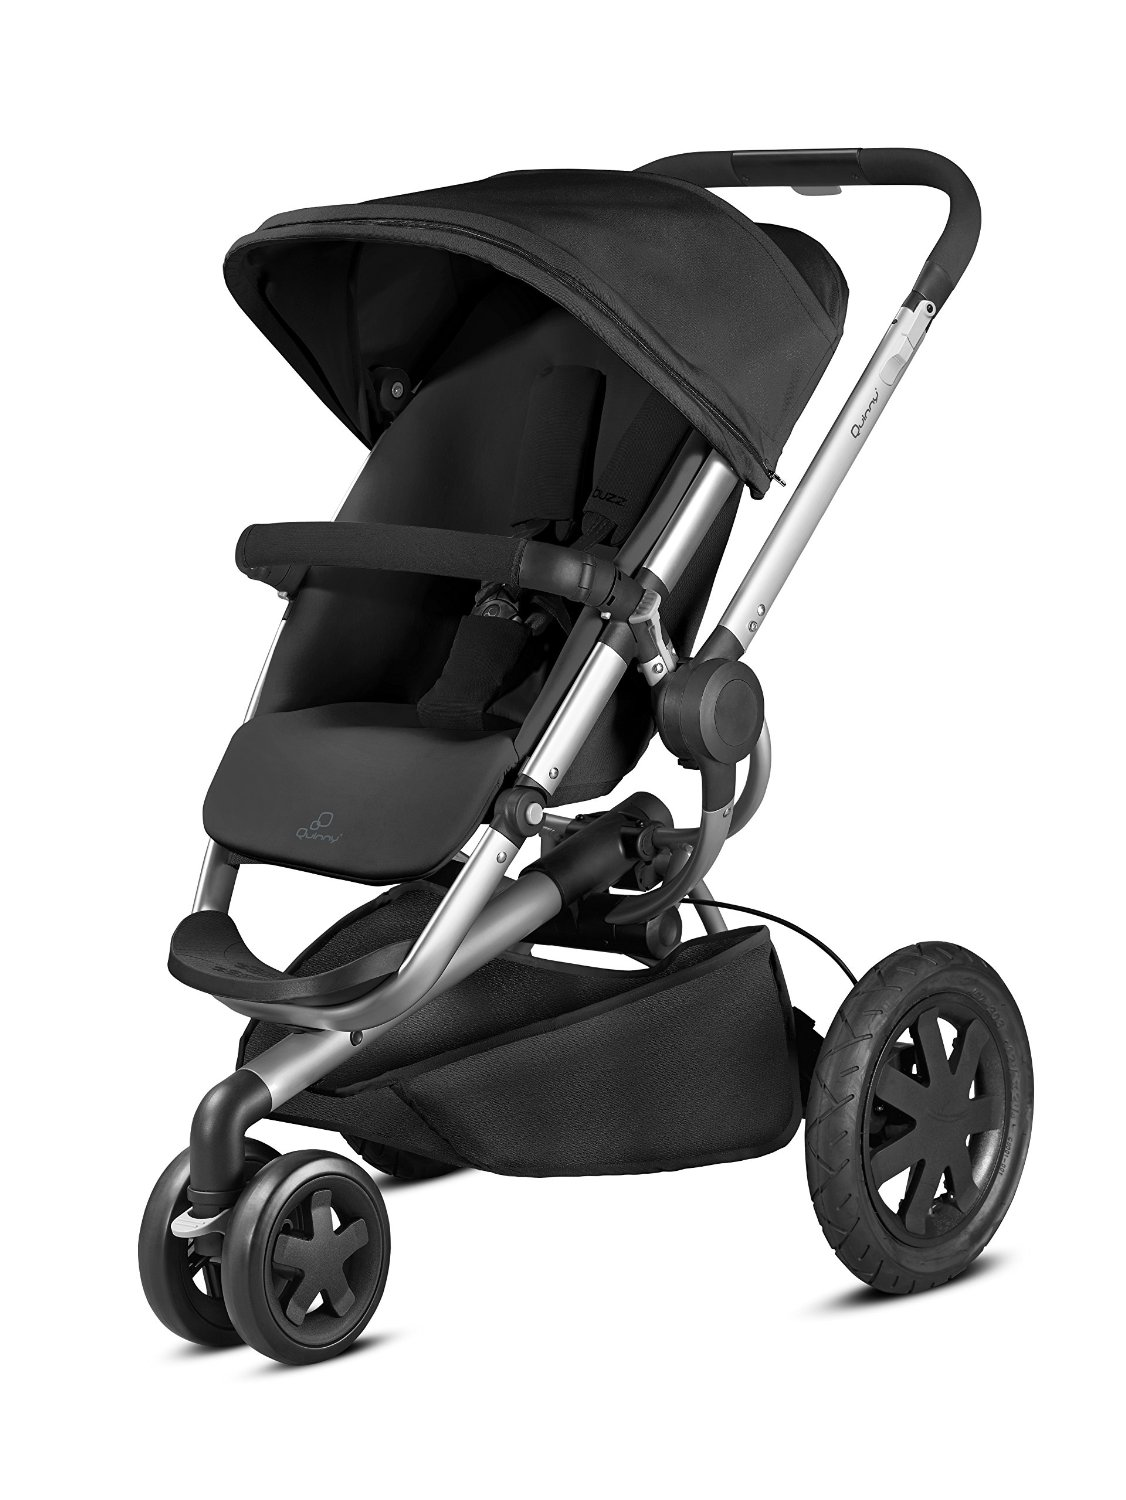 Baby Strollers Quinny The Best Baby Stroller Brands In 2020 Reviews